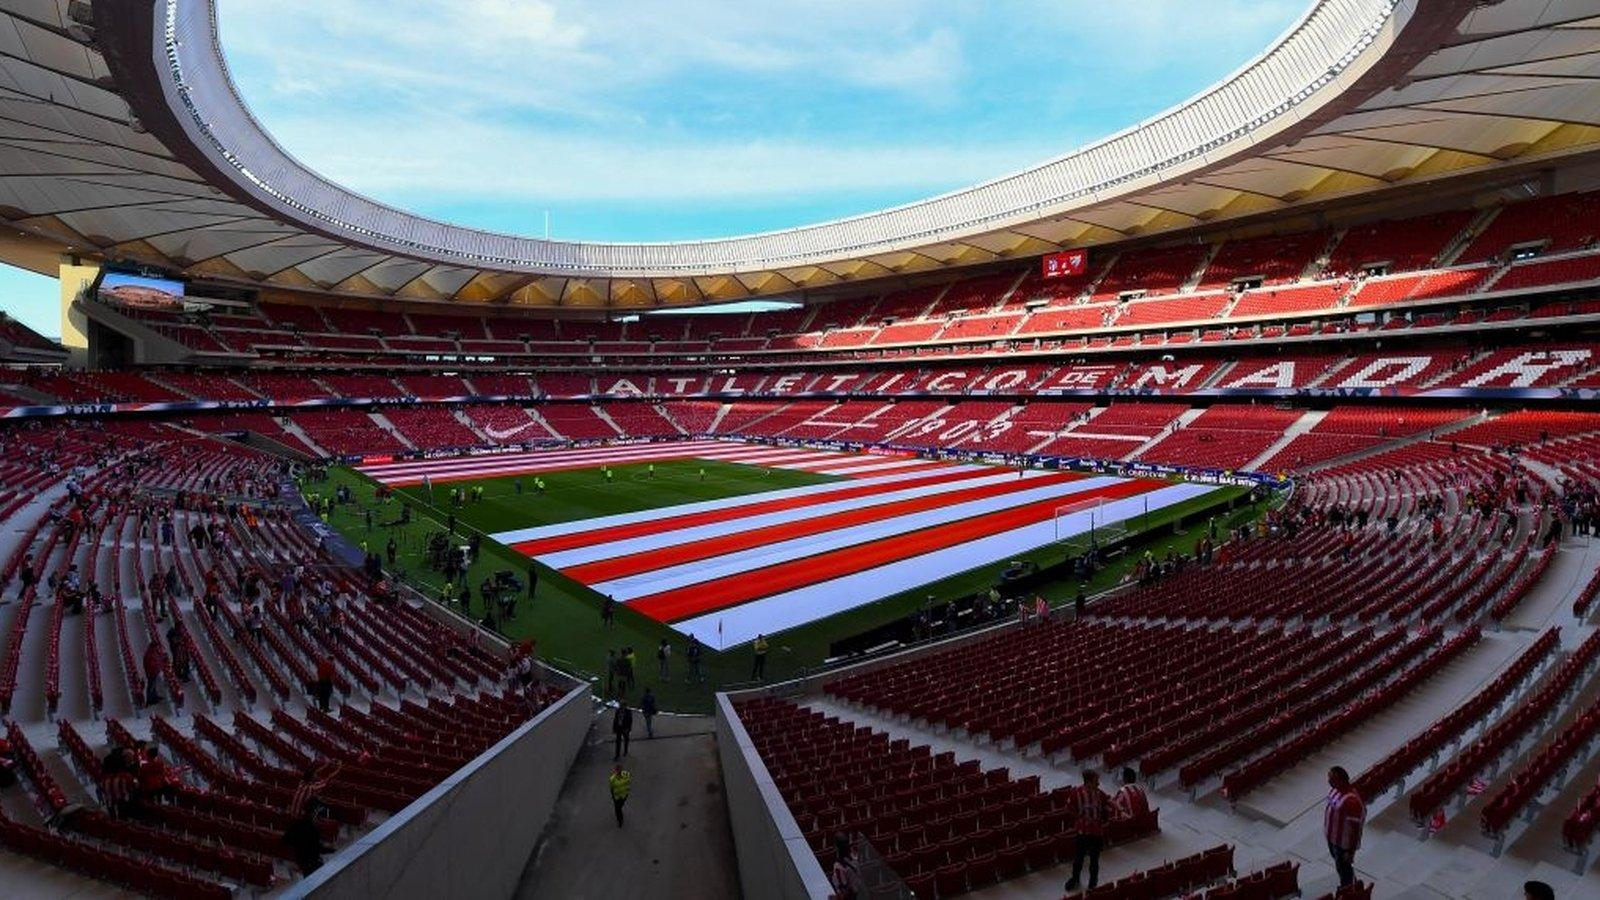 Champions League 2019 final at Atletico's new home